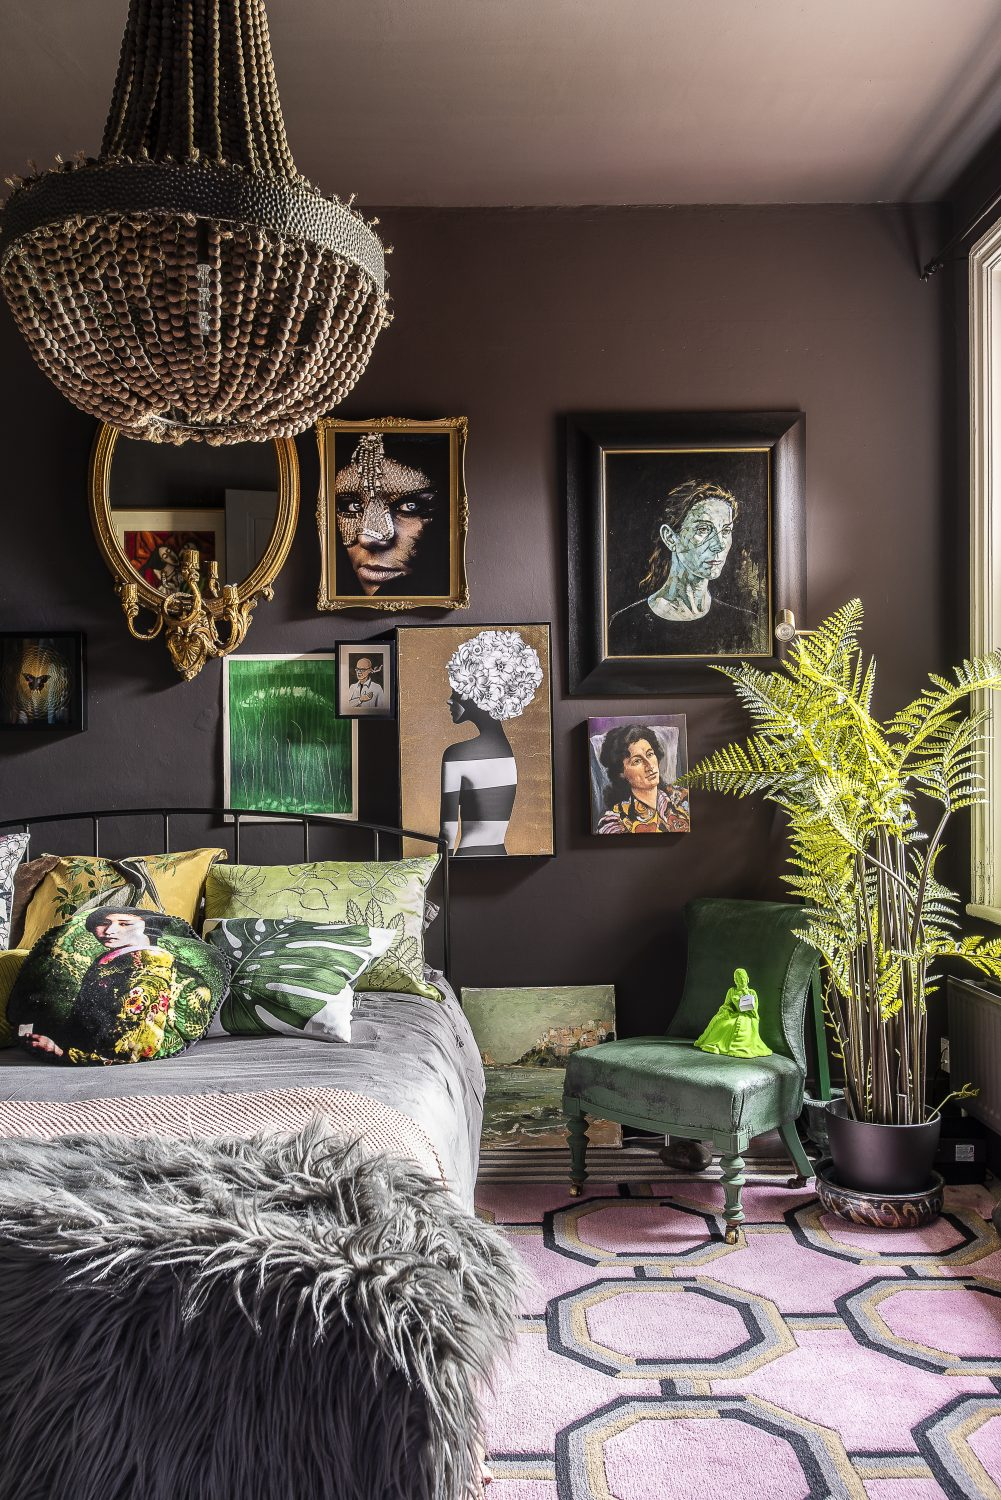 Although painted in deep, rich tones, the bedrooms are surprisingly airy, with light flooding in from large windows, reflected in touches of gilding and with greenery bringing a bit of the outdoors in